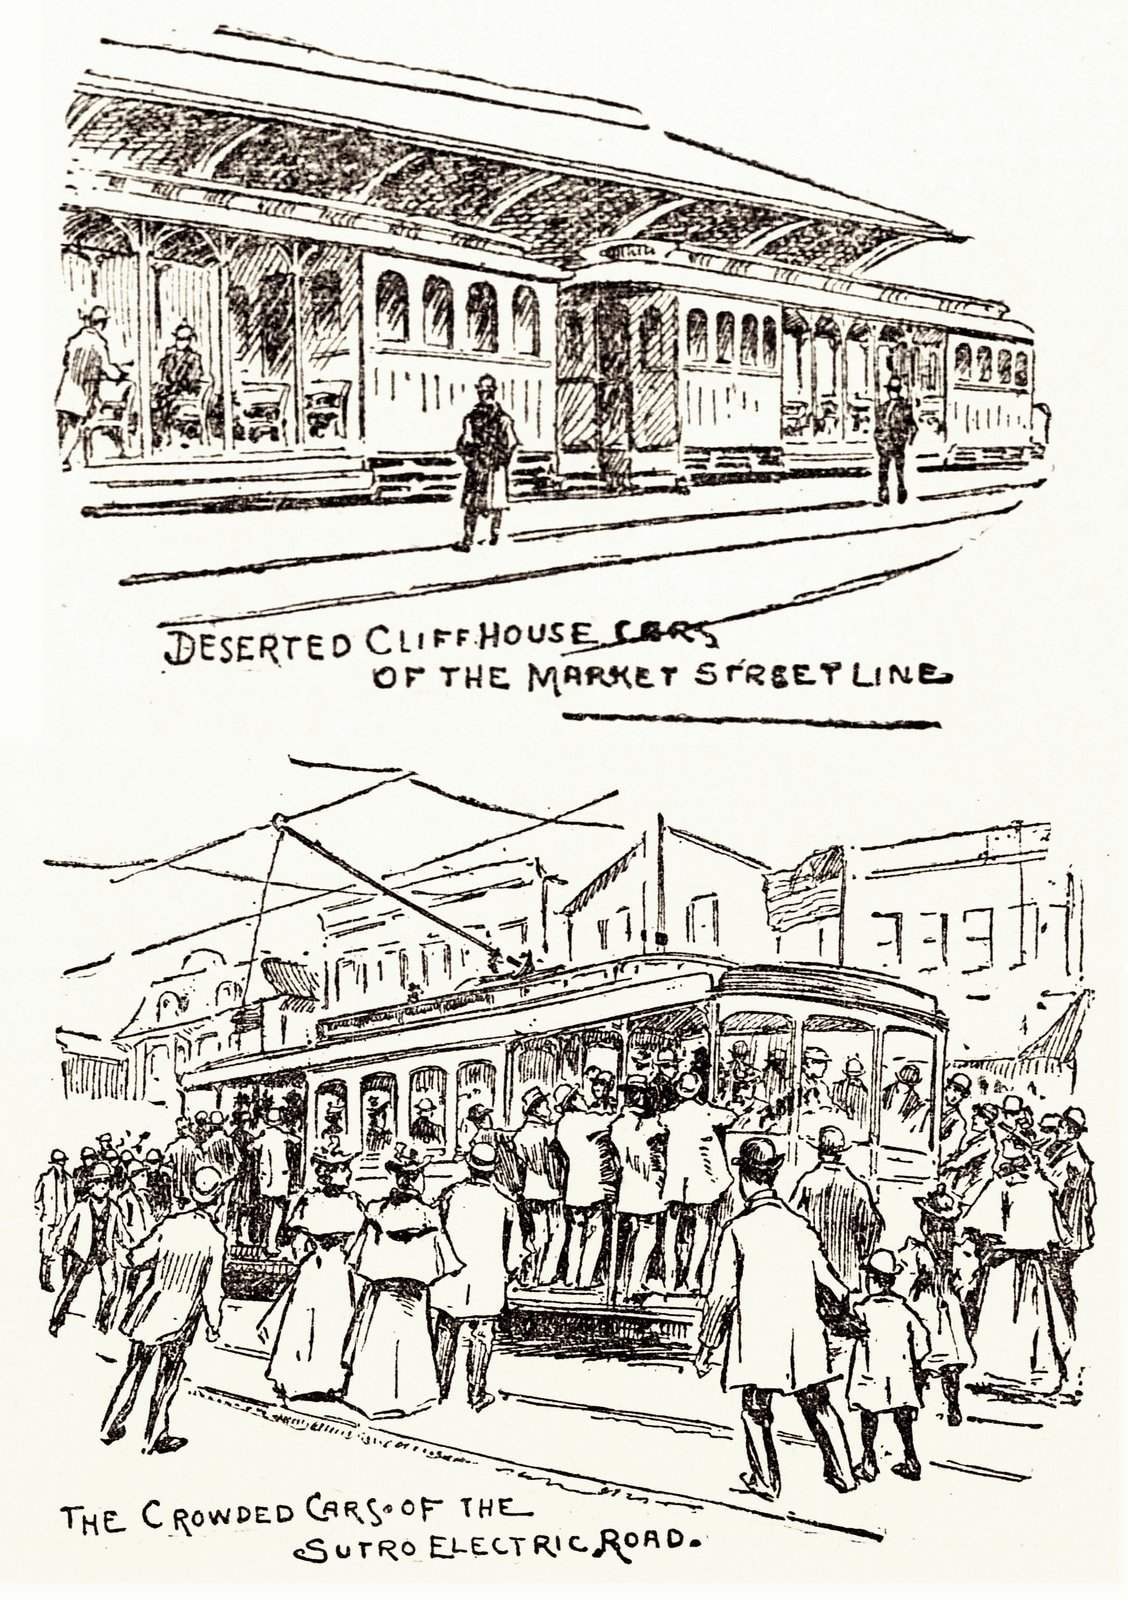 Cliff House and Sutro Railway opening in 1896 (2)